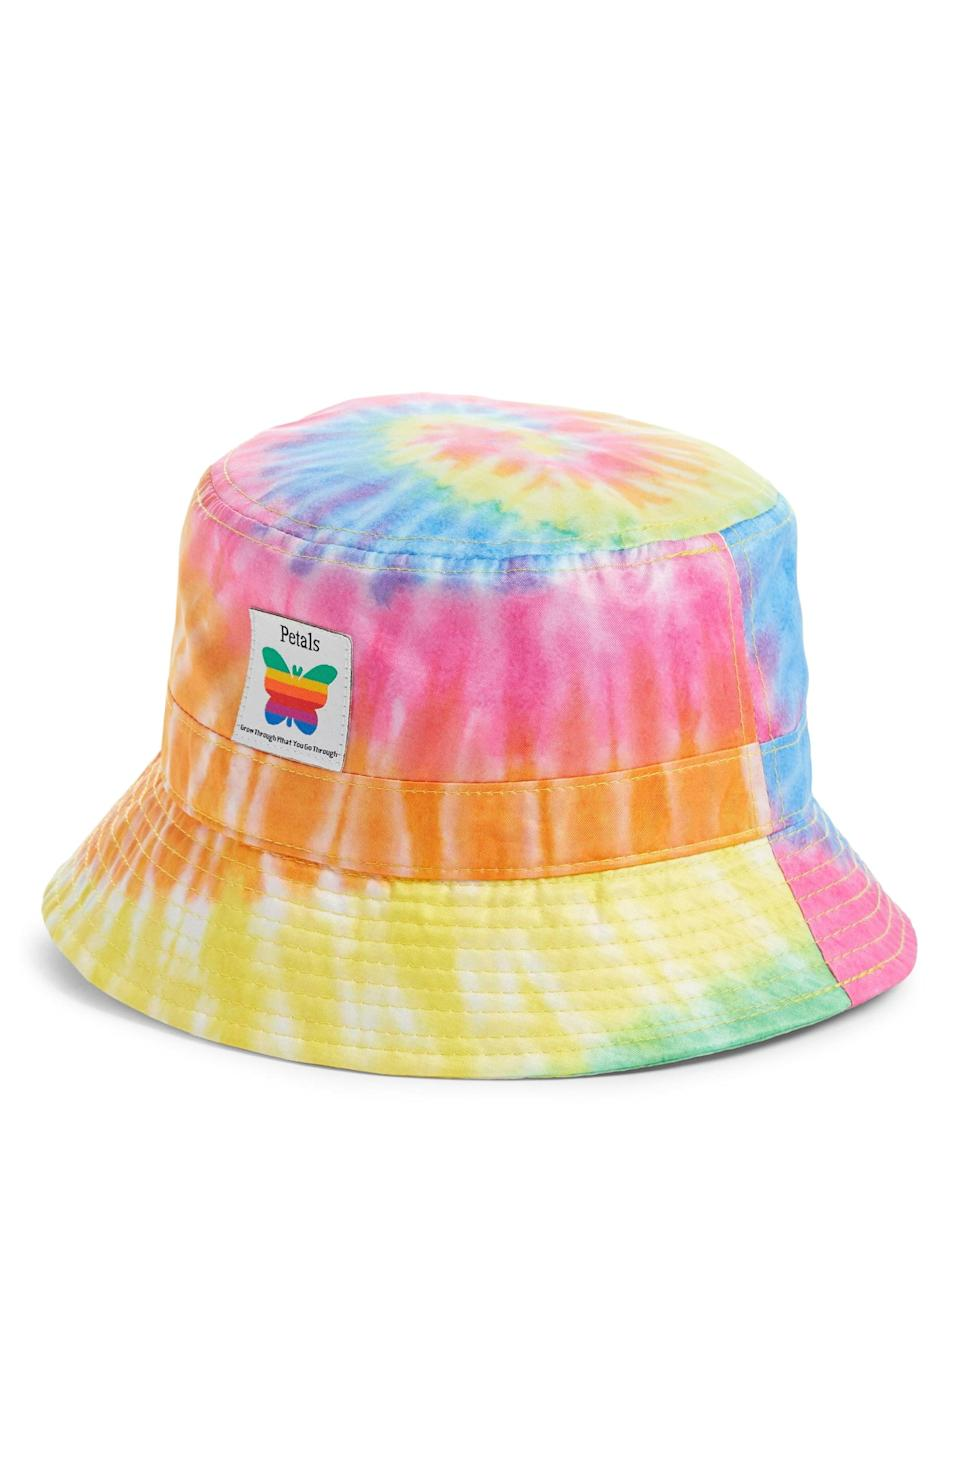 <p>This flamboyant <span>Peatals and Peacocks Tie Dye Bucket Hat</span> ($28) will add a touch of playful confidence to any look.</p>